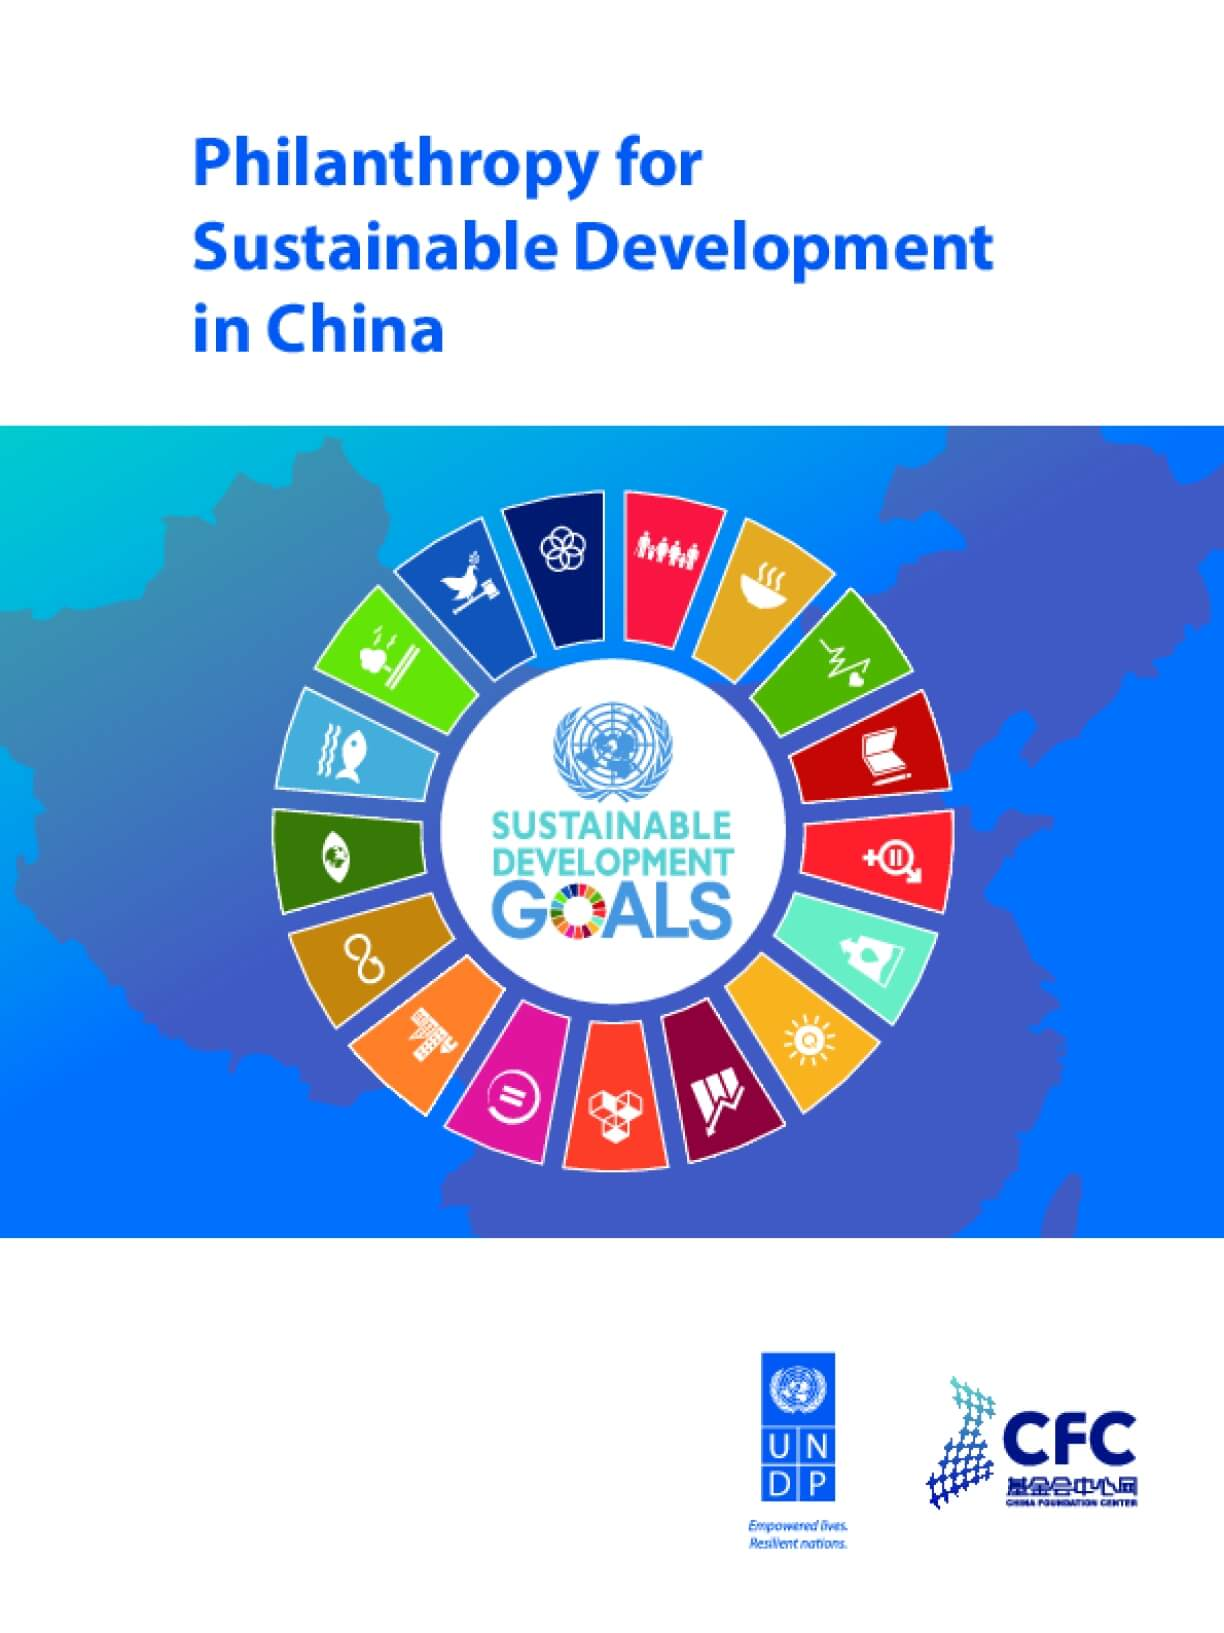 Philanthropy for Sustainable Development in China